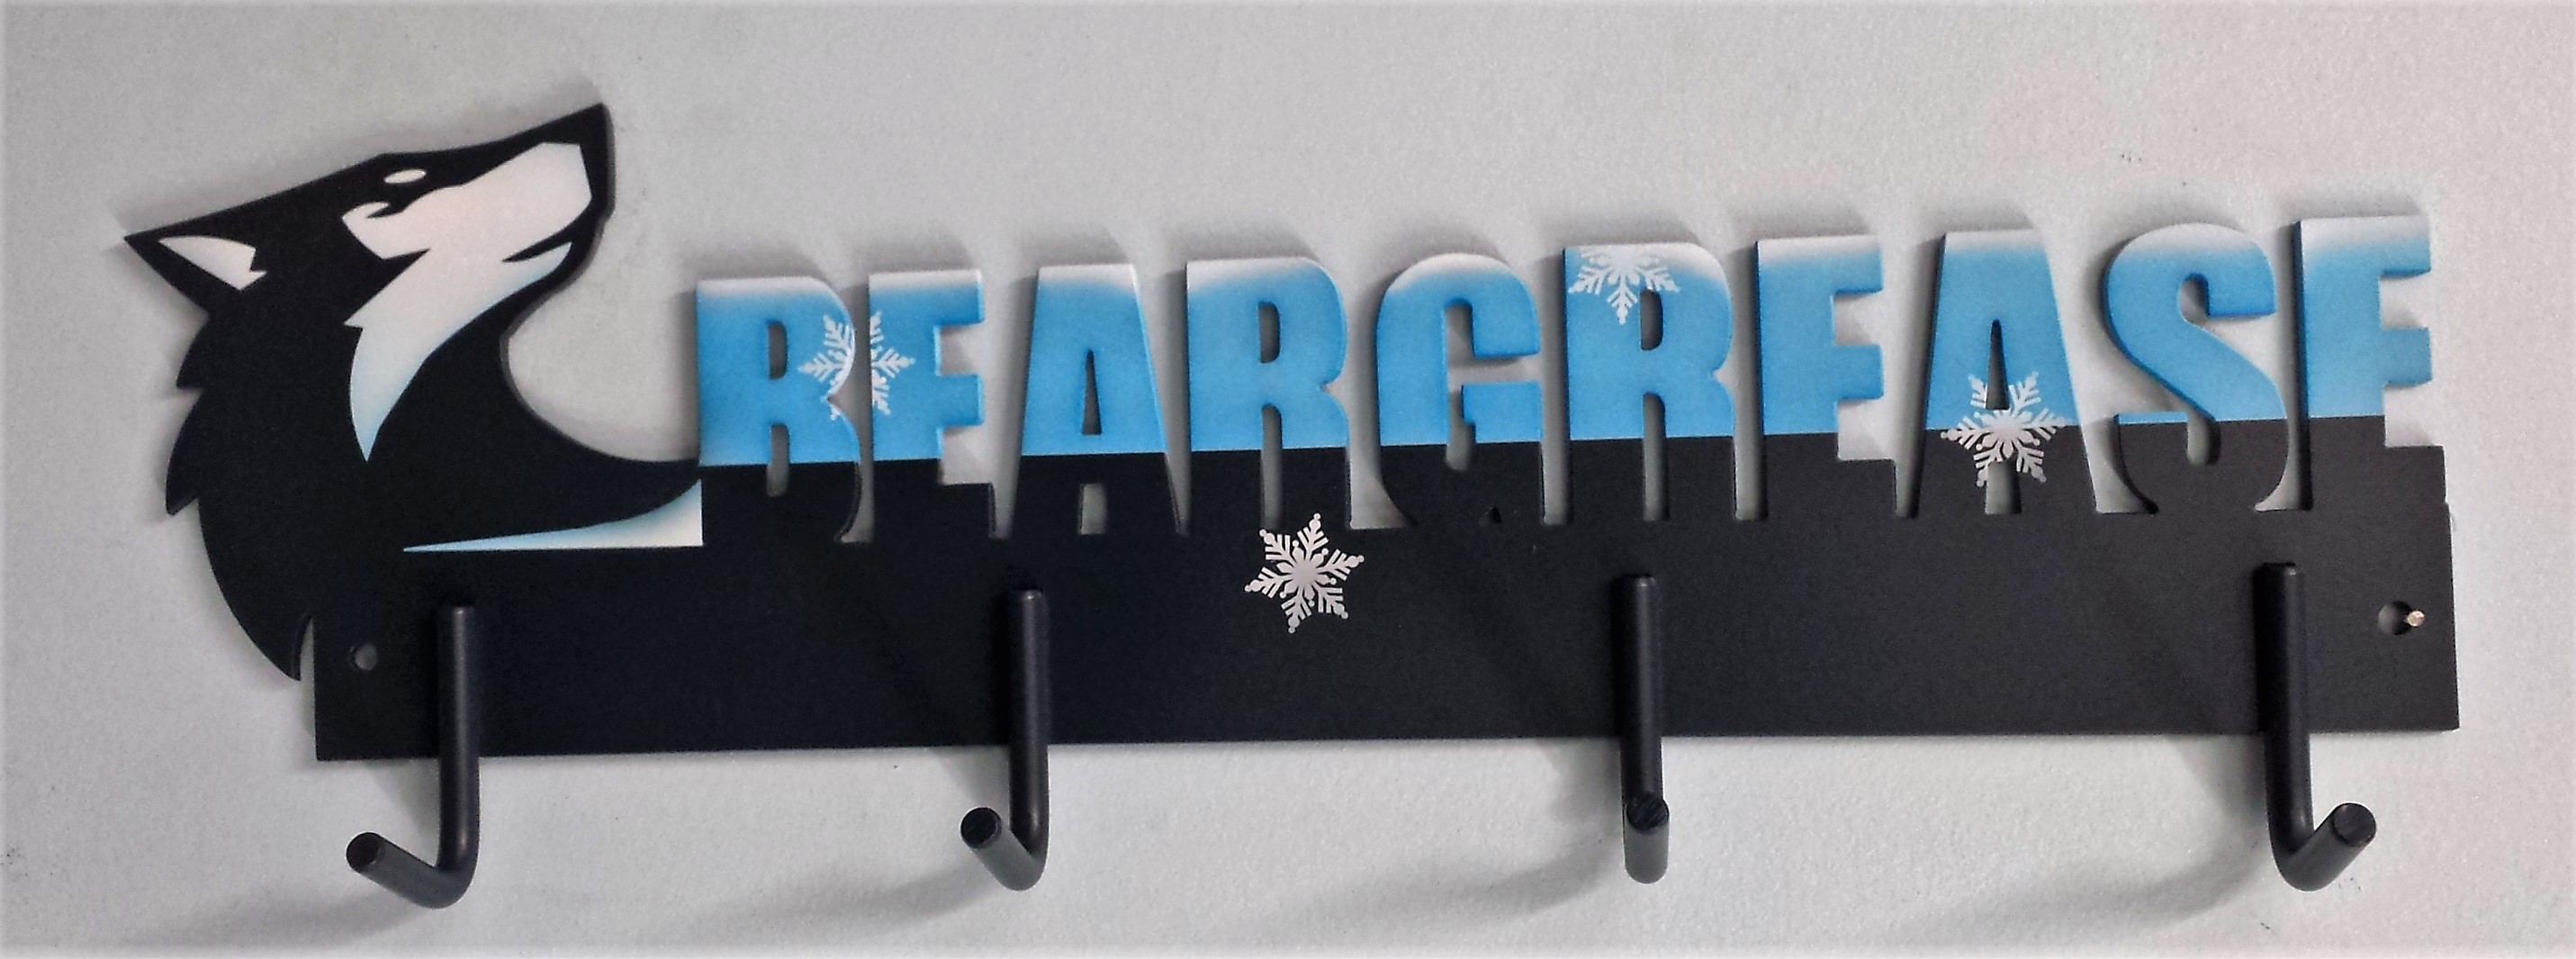 beargrease-coat-hanger-1.jpg